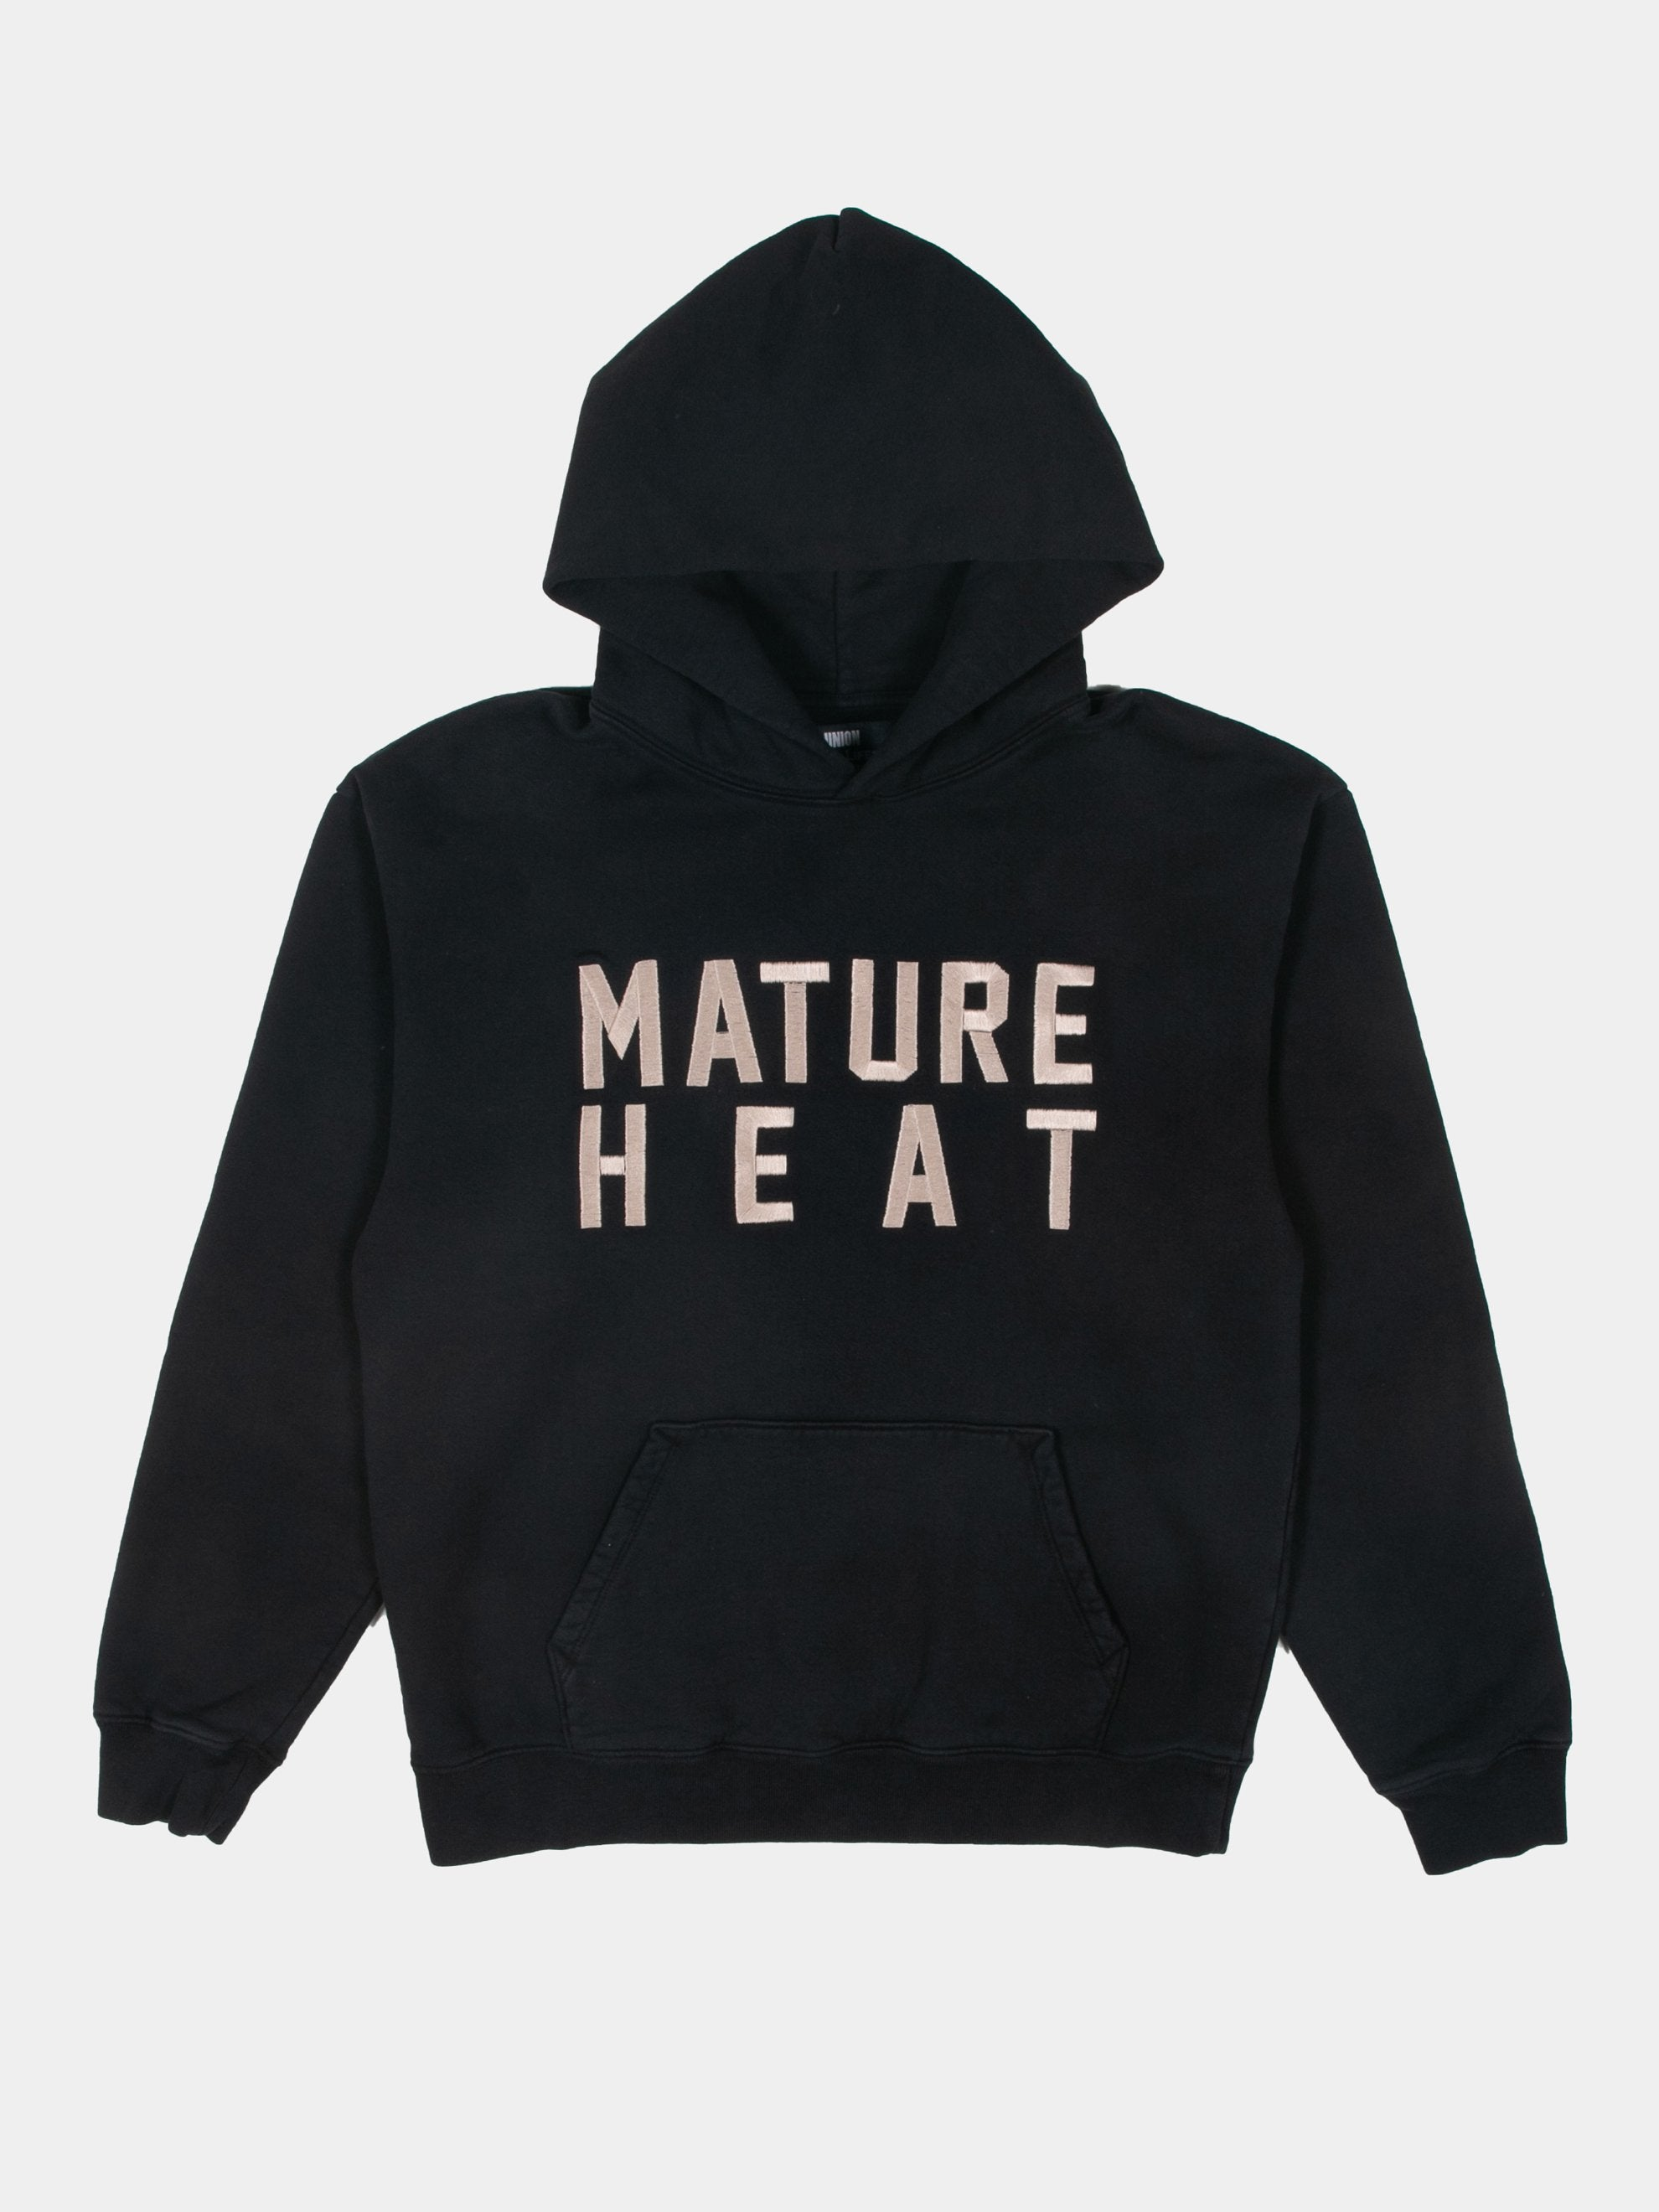 Black Cali Dewitt x Eco Mature Heat Hooded Sweatshirt 1